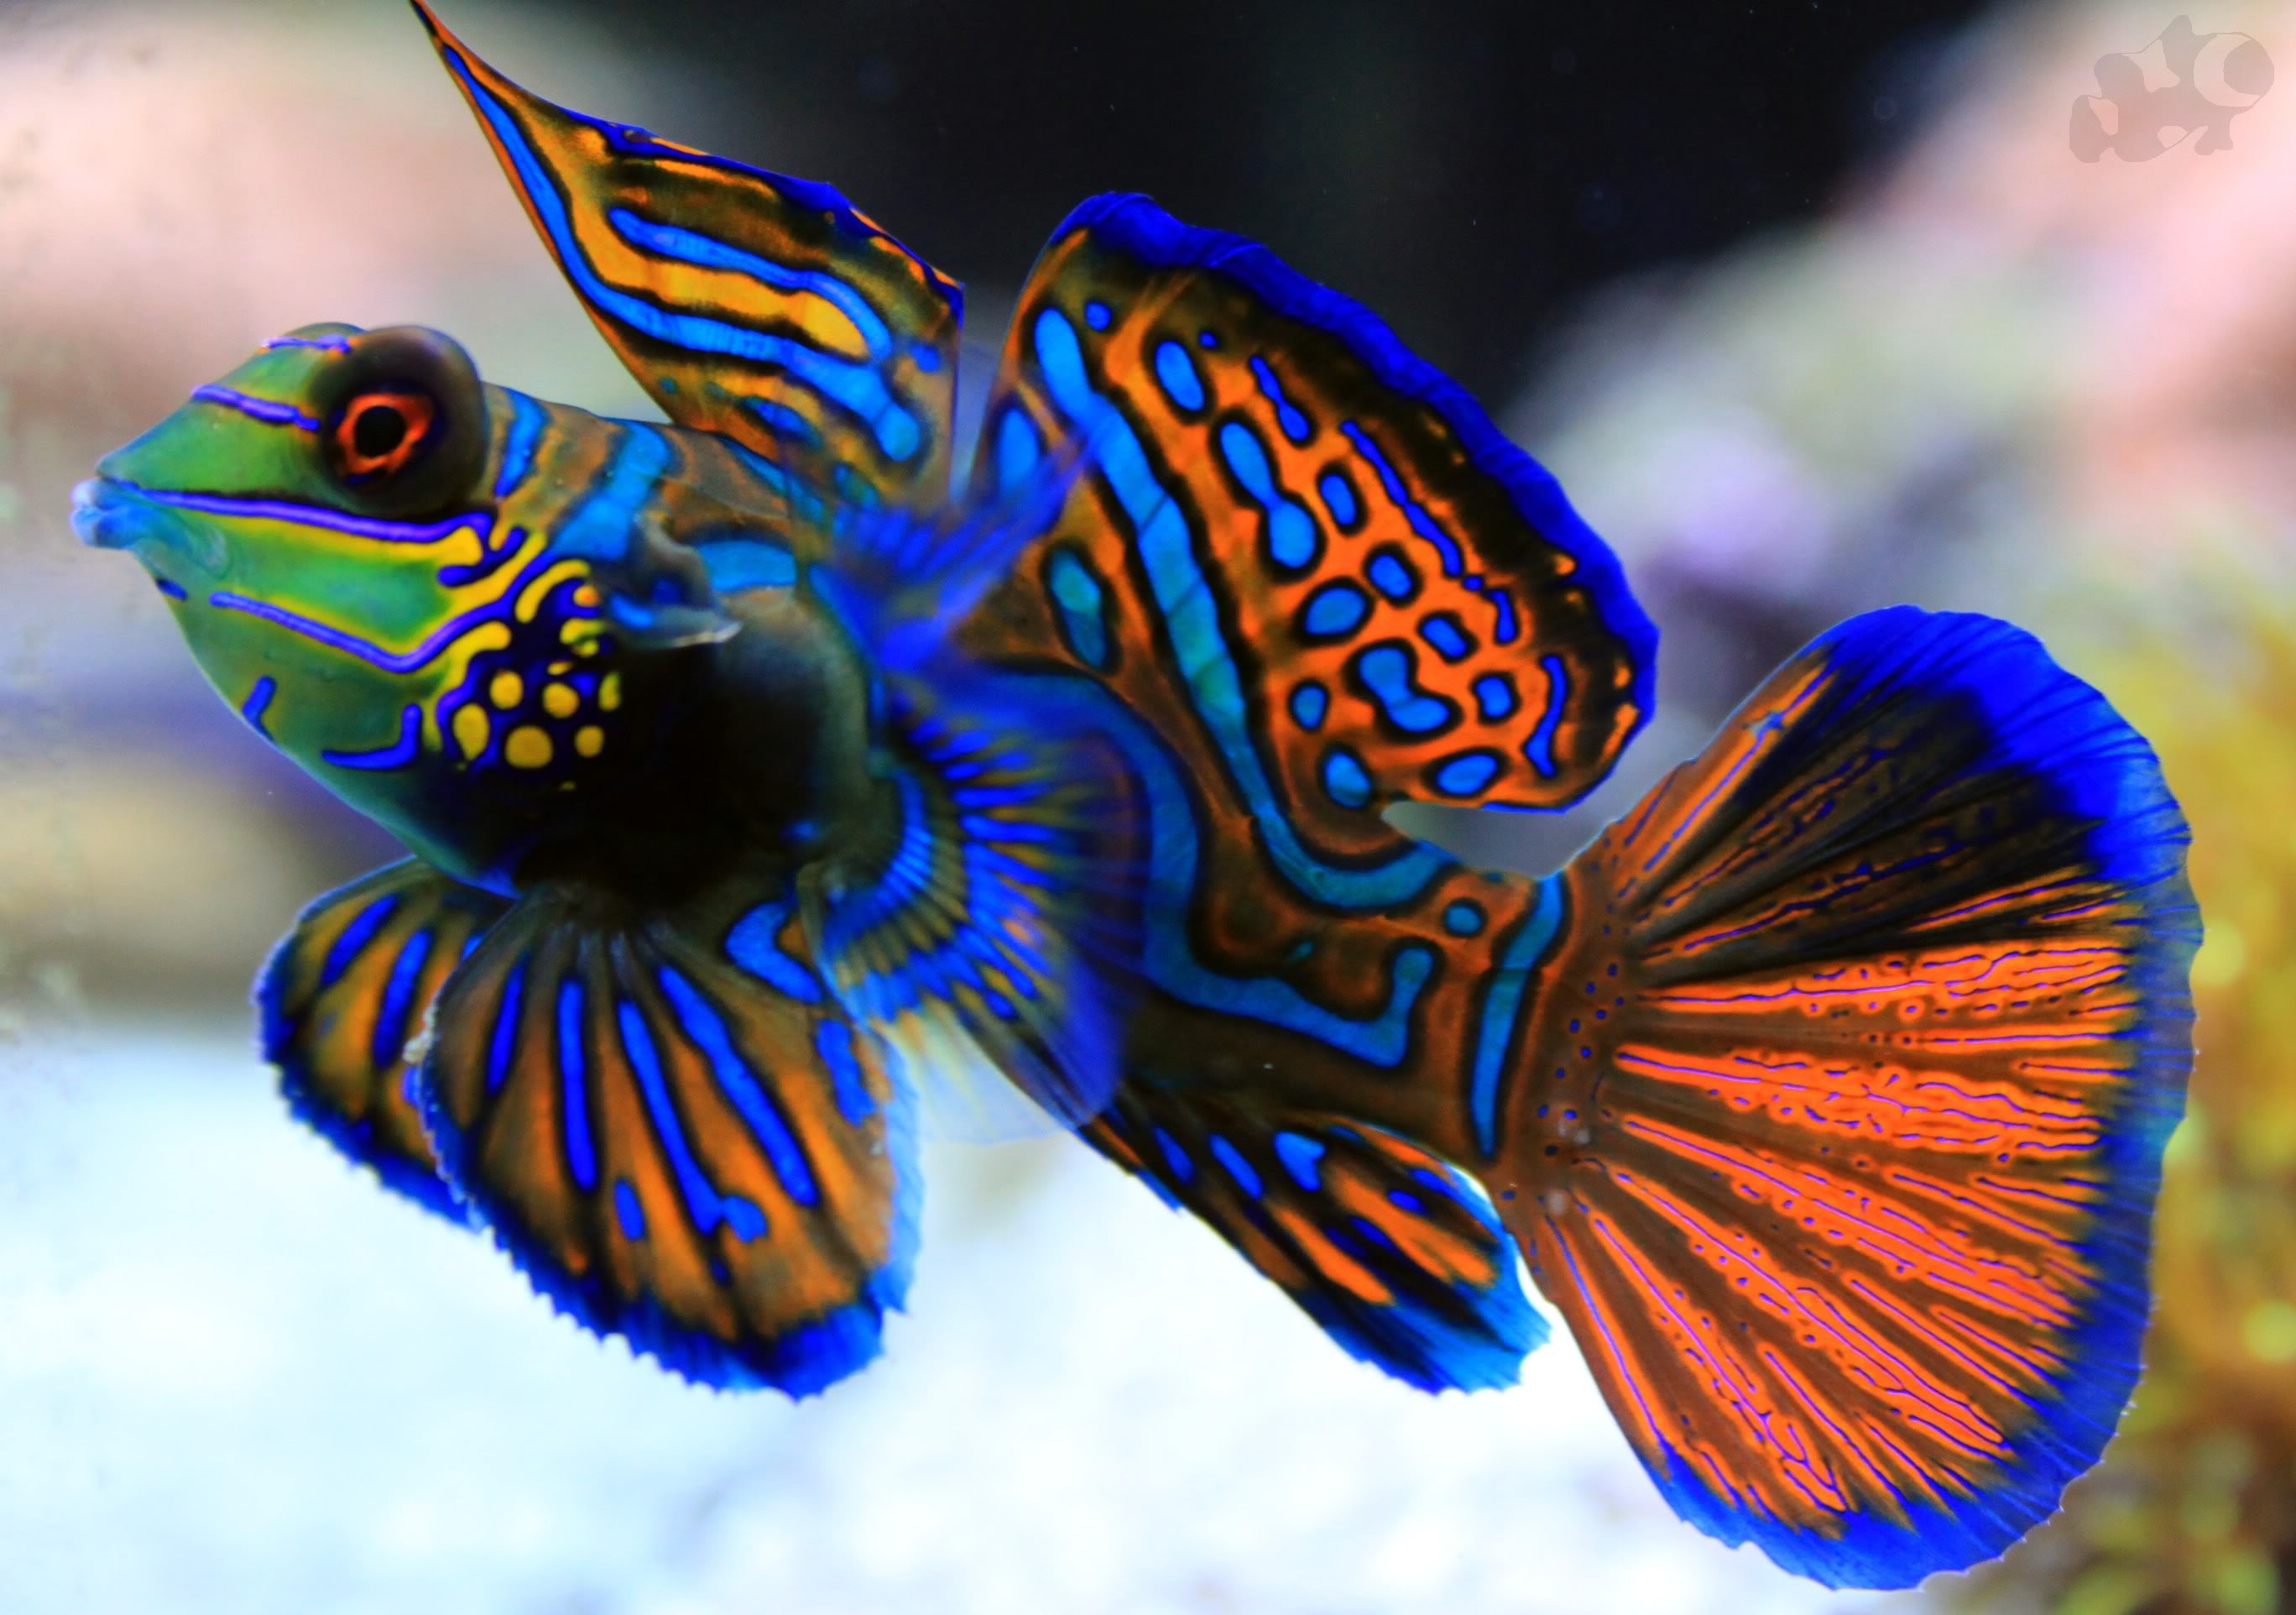 Mandarin fish swims wallpaper